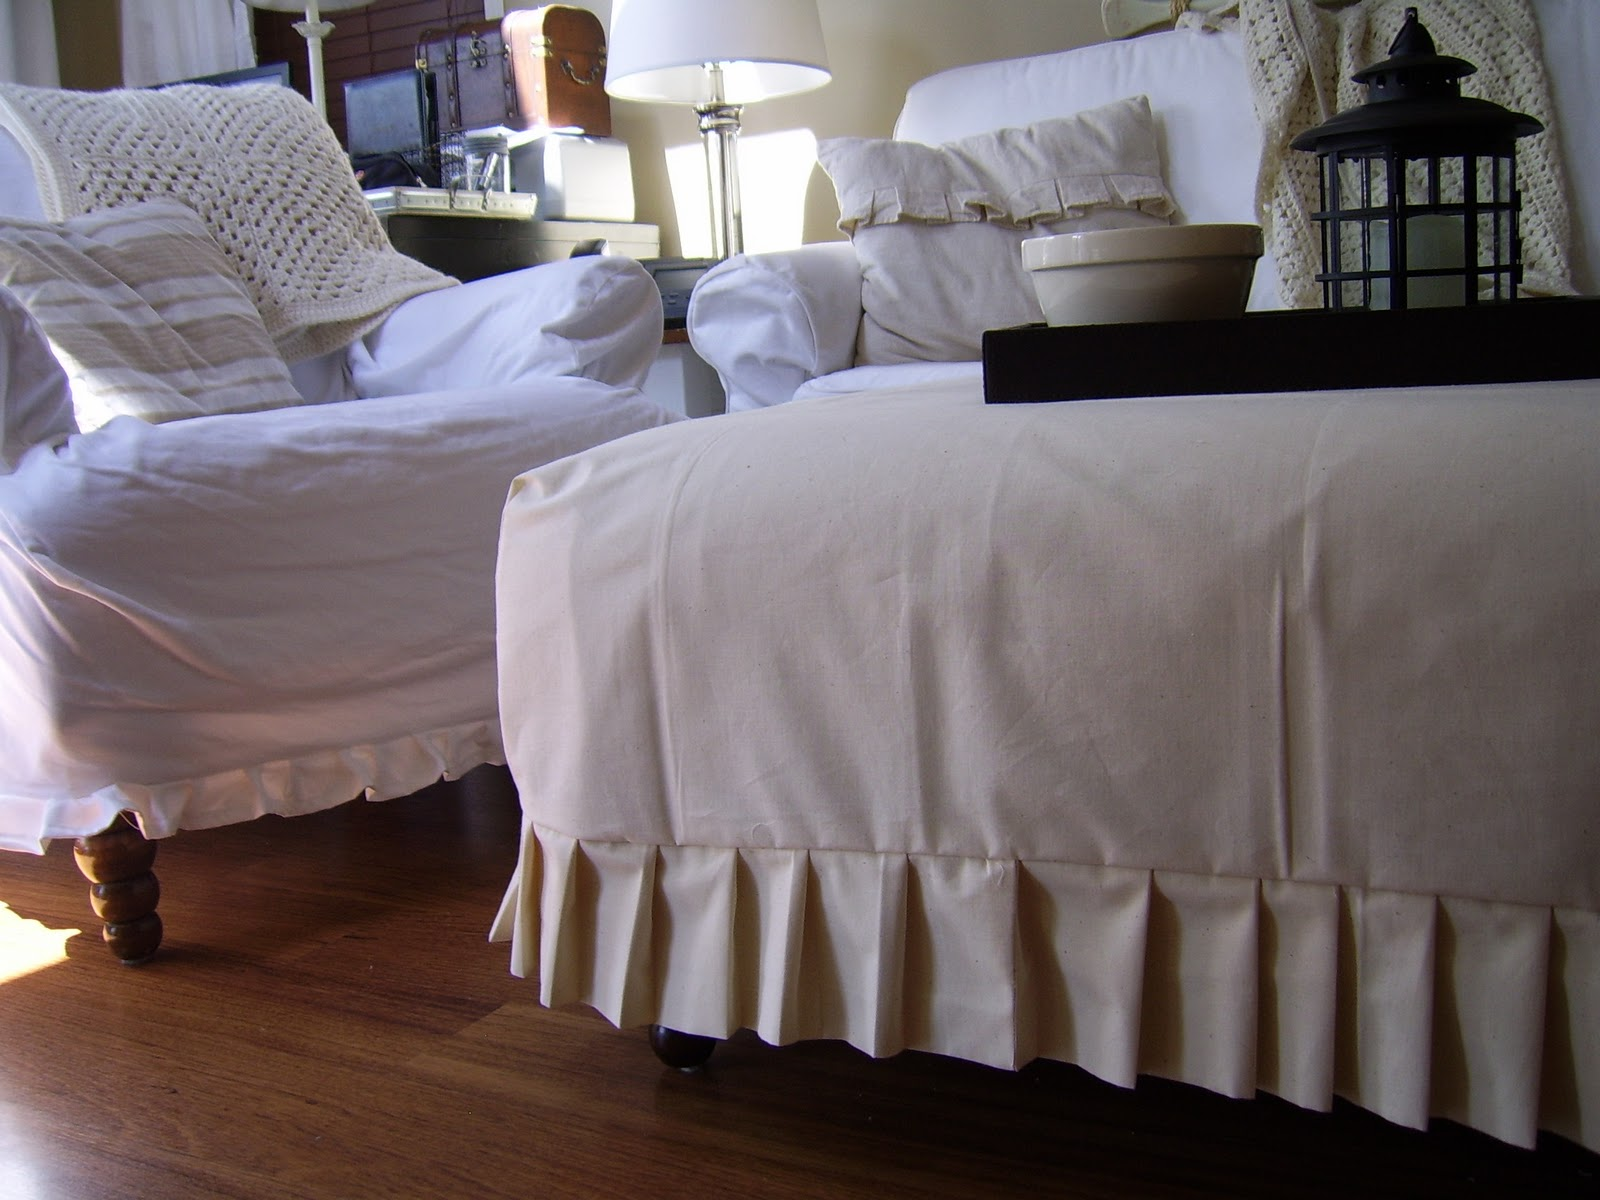 Rustic Maple Slipcovers in White